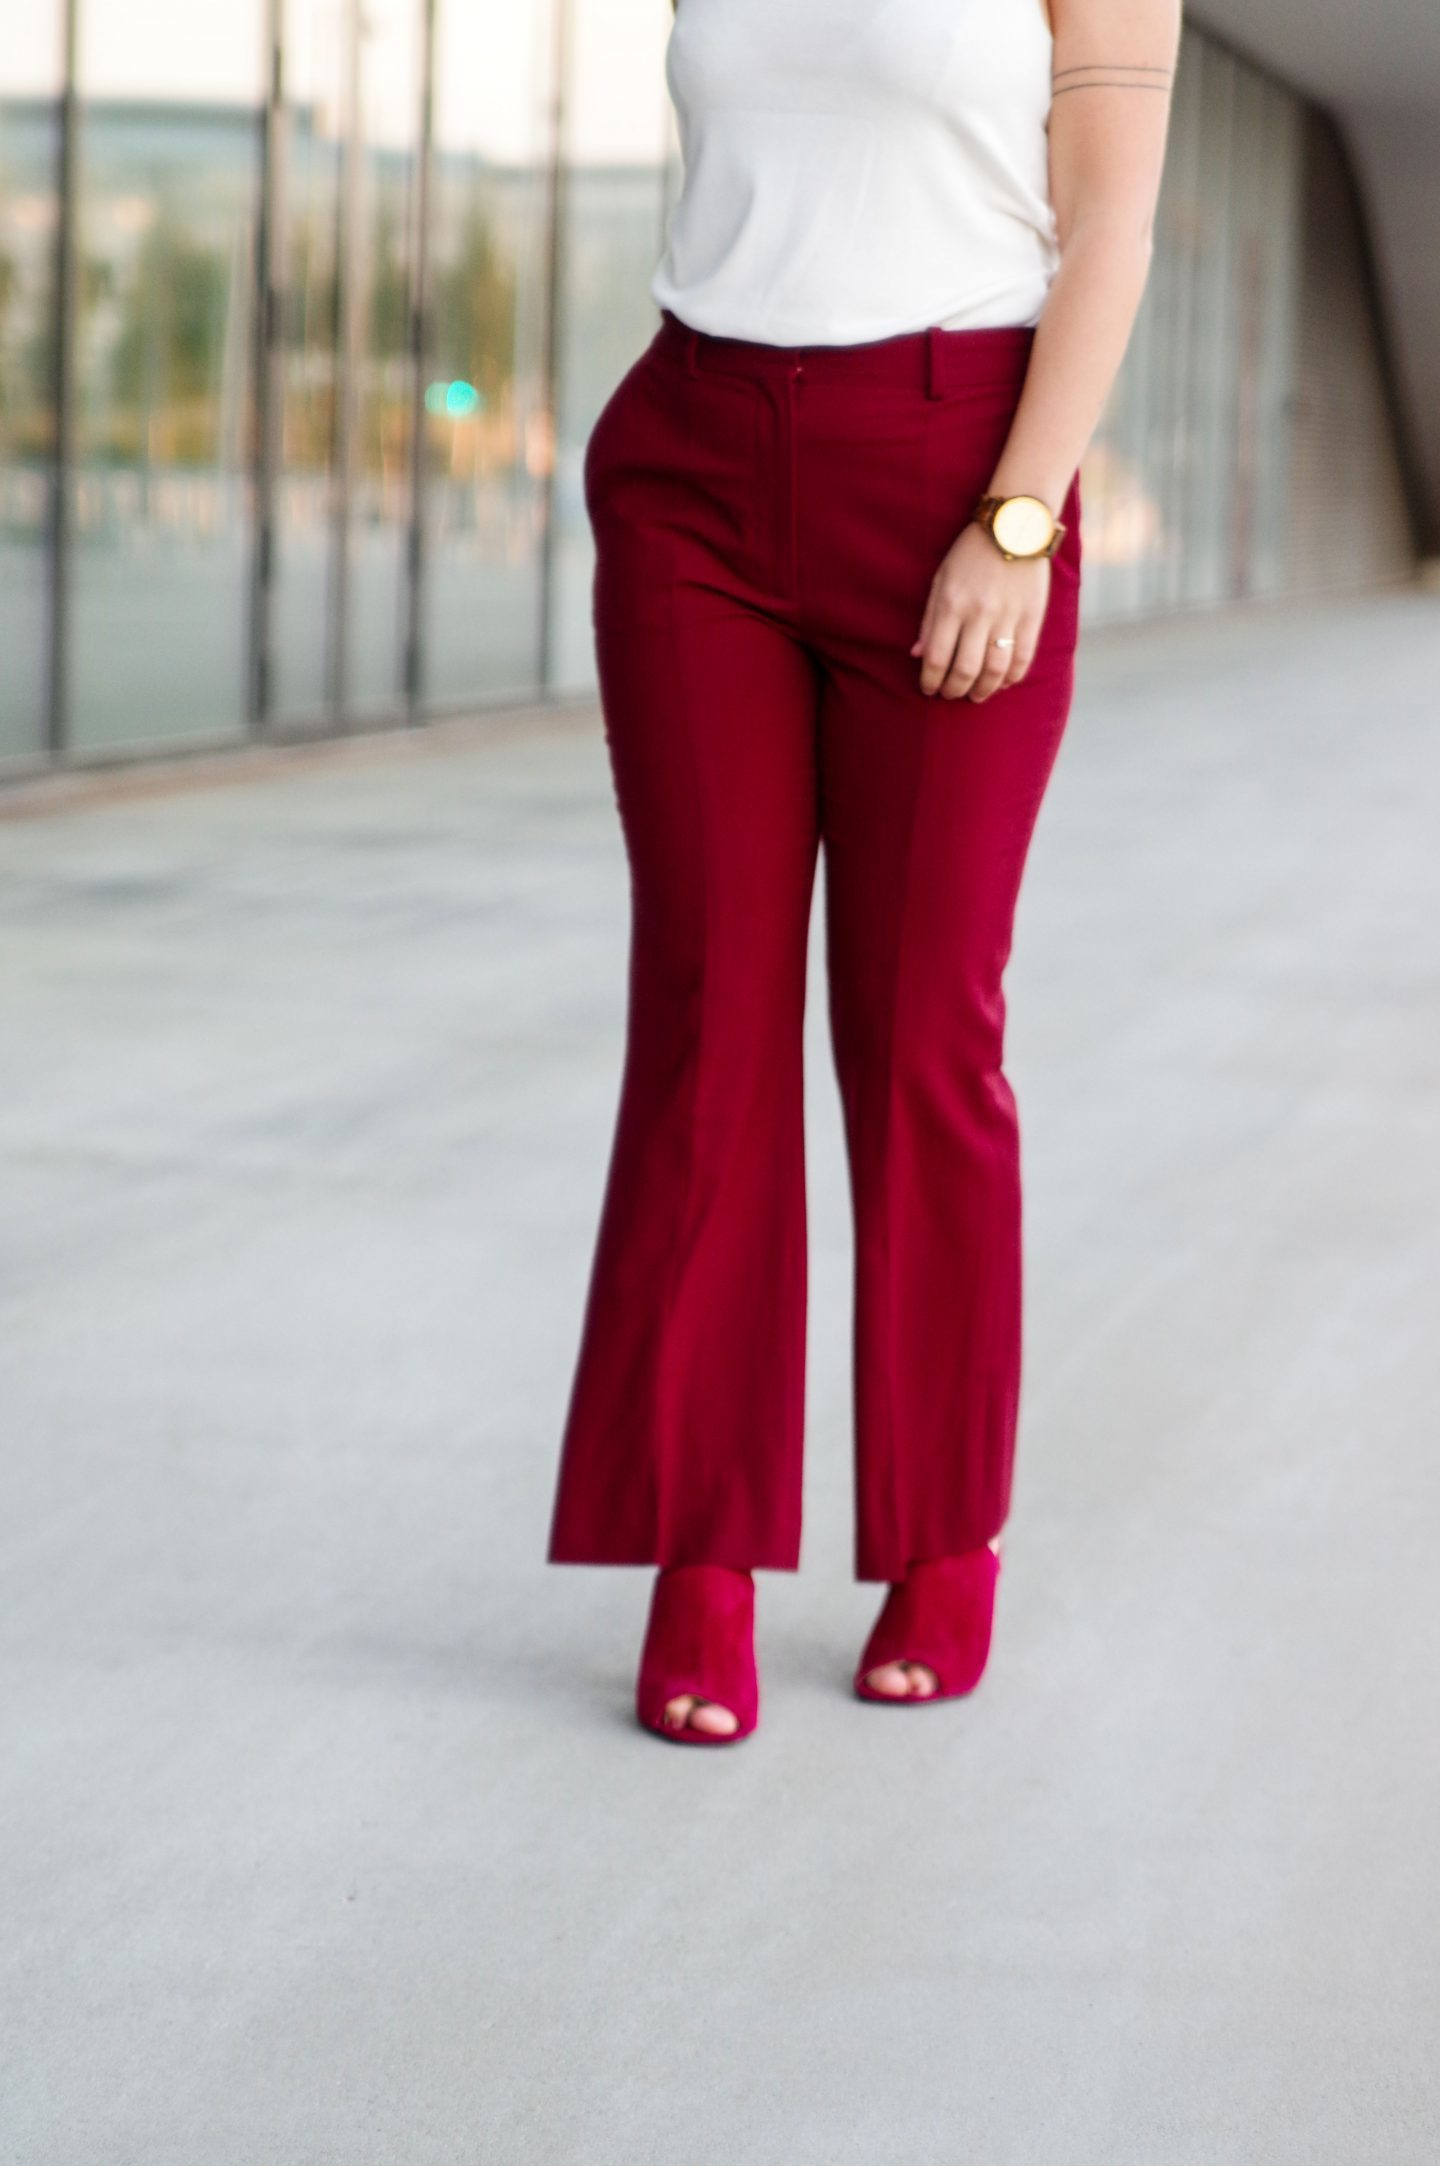 Flared burgundy pants